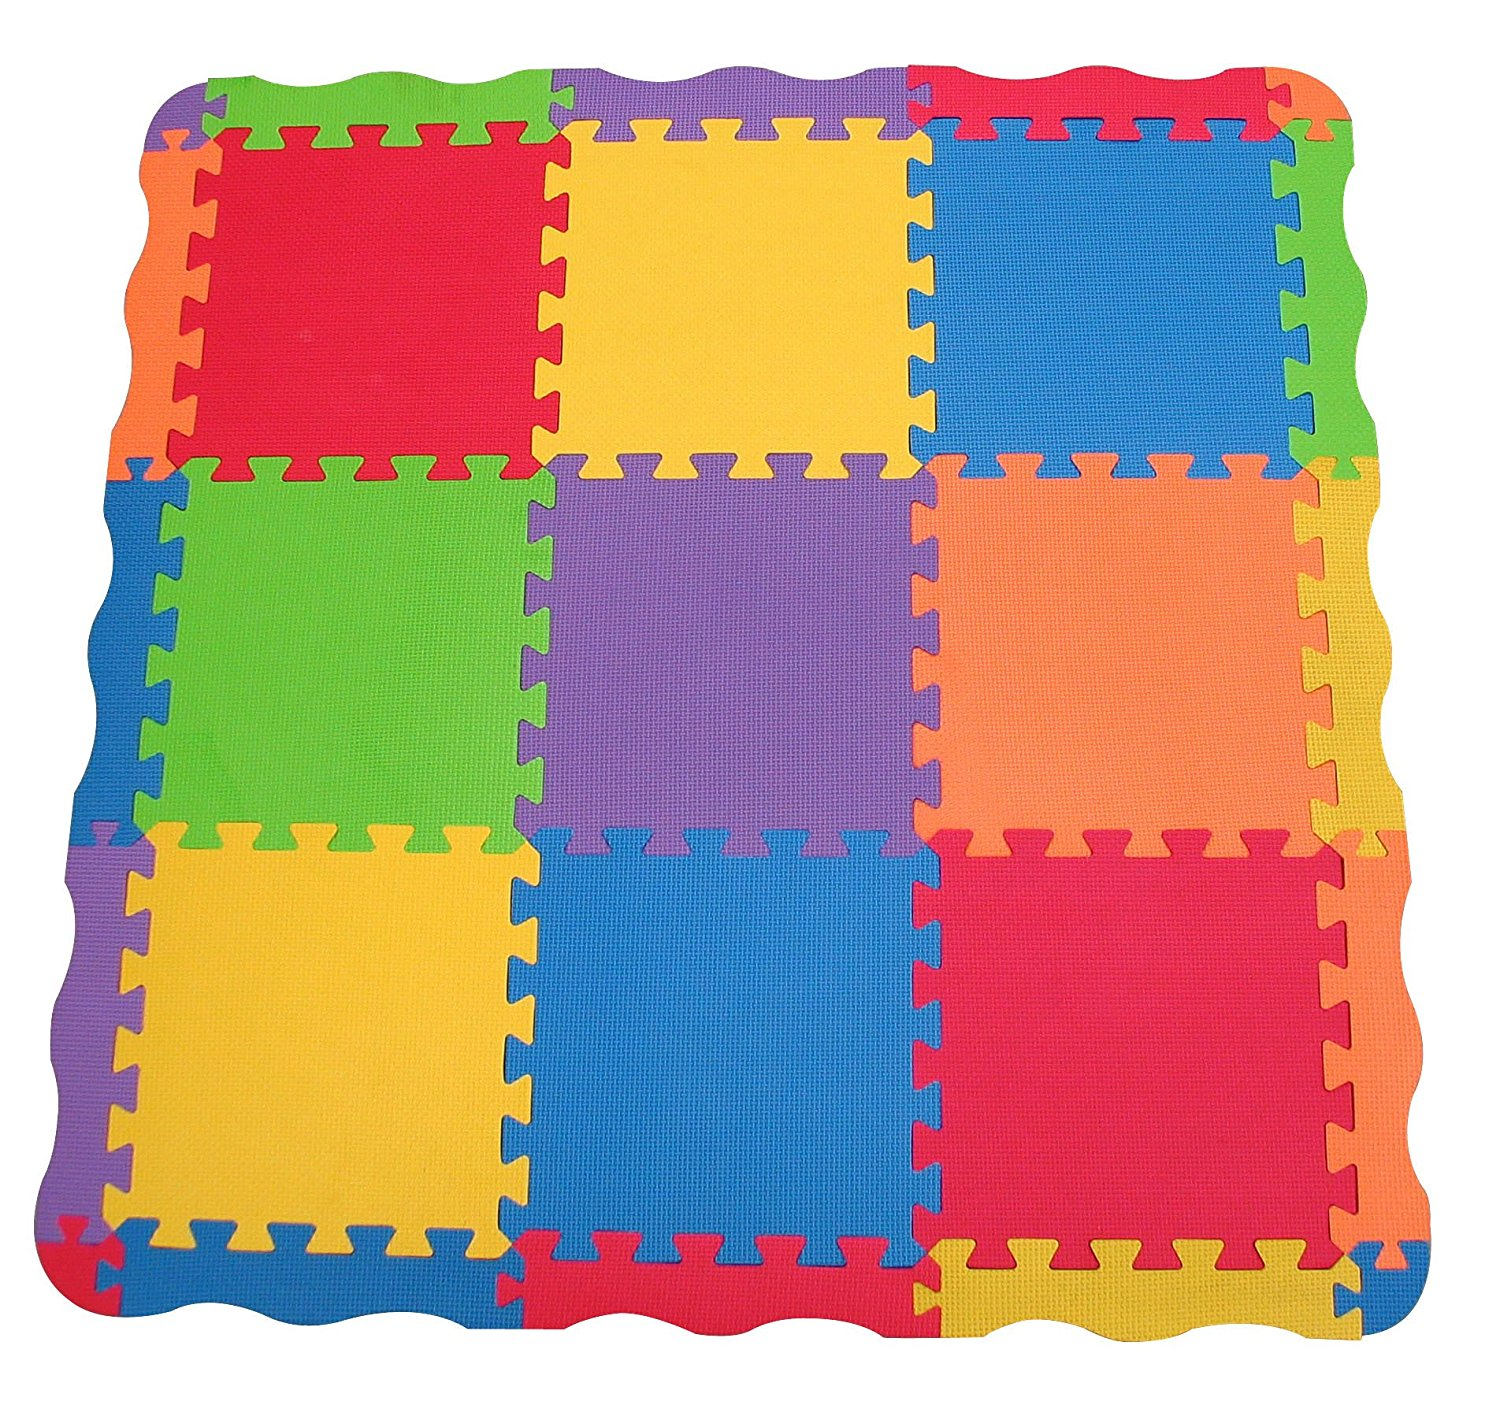 for s in eva shop buy mats reversible indoor at mat best floor kids puzzle outdoor malaysia pcs x interlocking children play playmats price